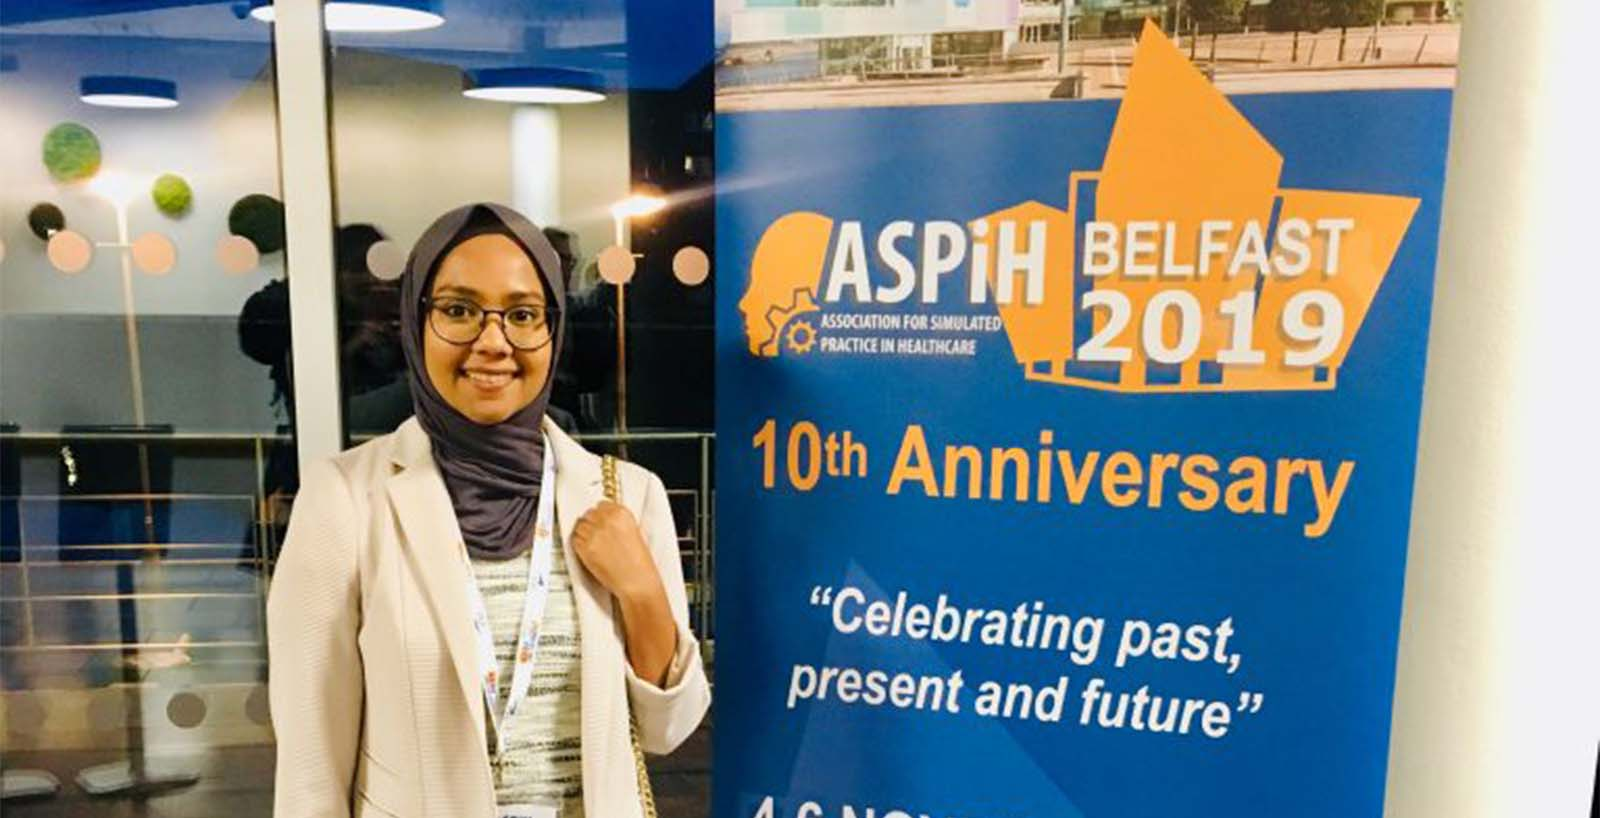 Sakiinah's Abstract Published in the BMJ Peer-reviewed Journal